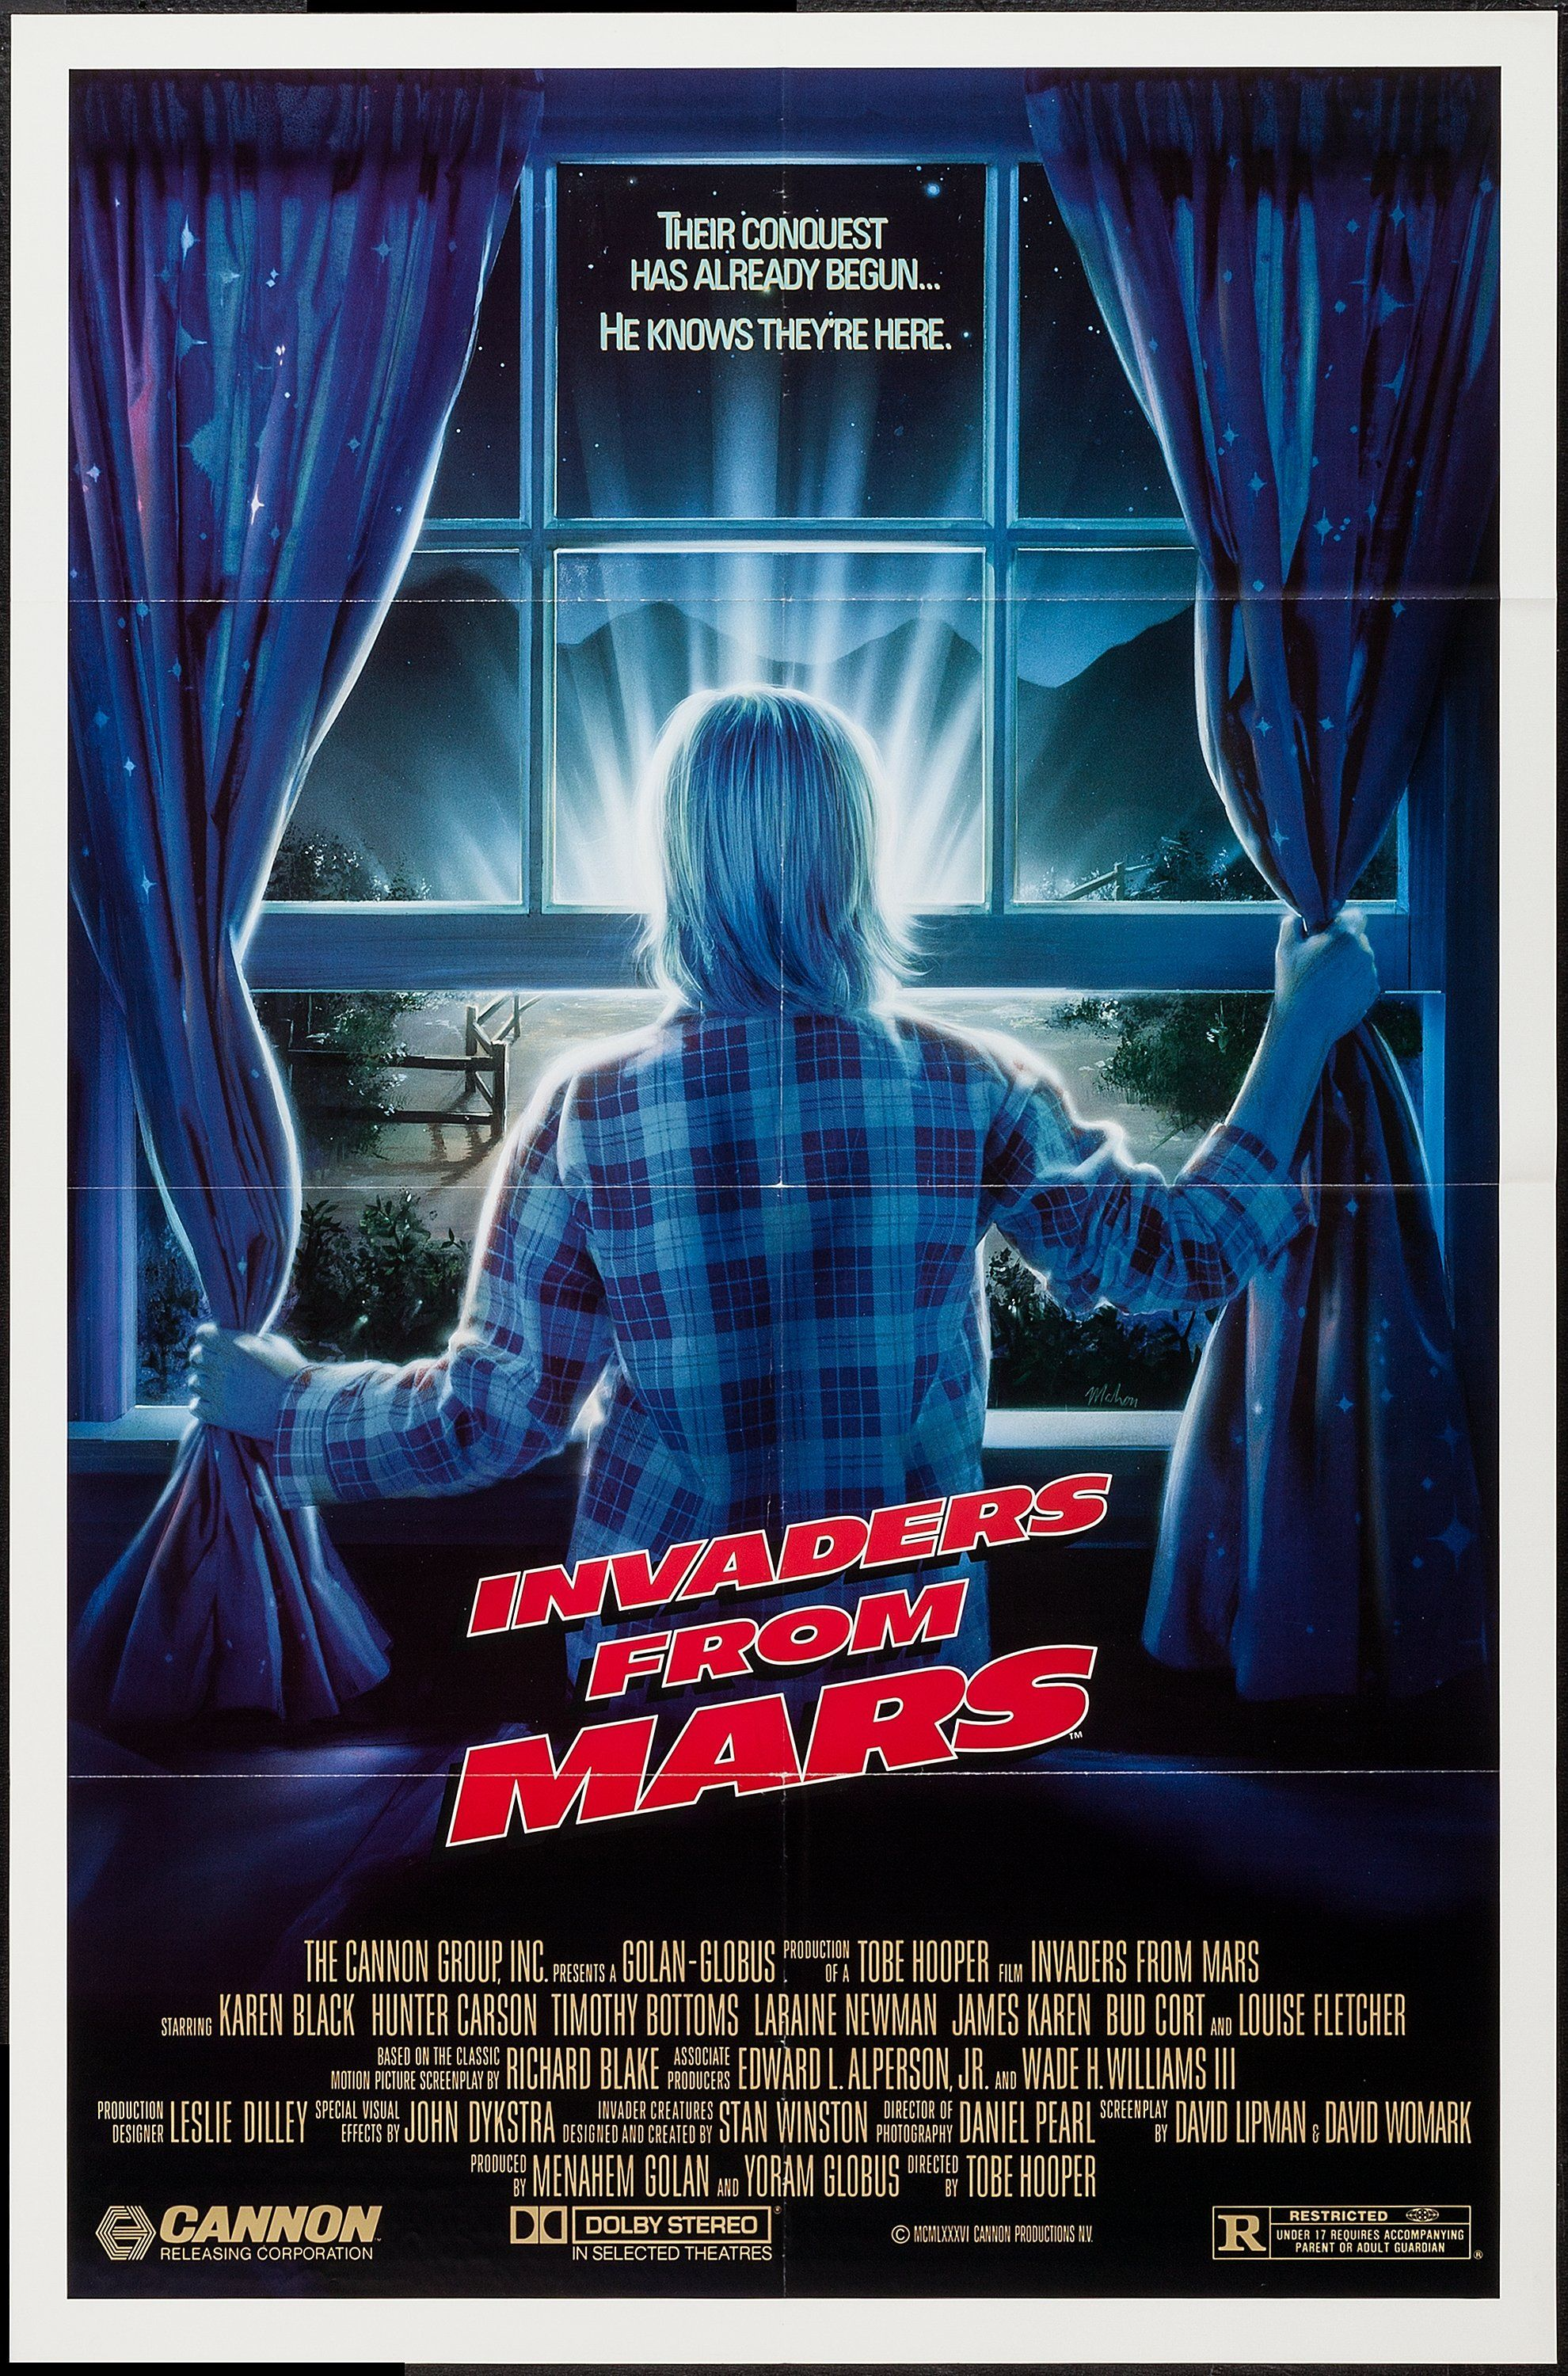 Invaders From Mars 1986 80s In Film Pinterest Movie Posters Short Circuit 27x40 Poster